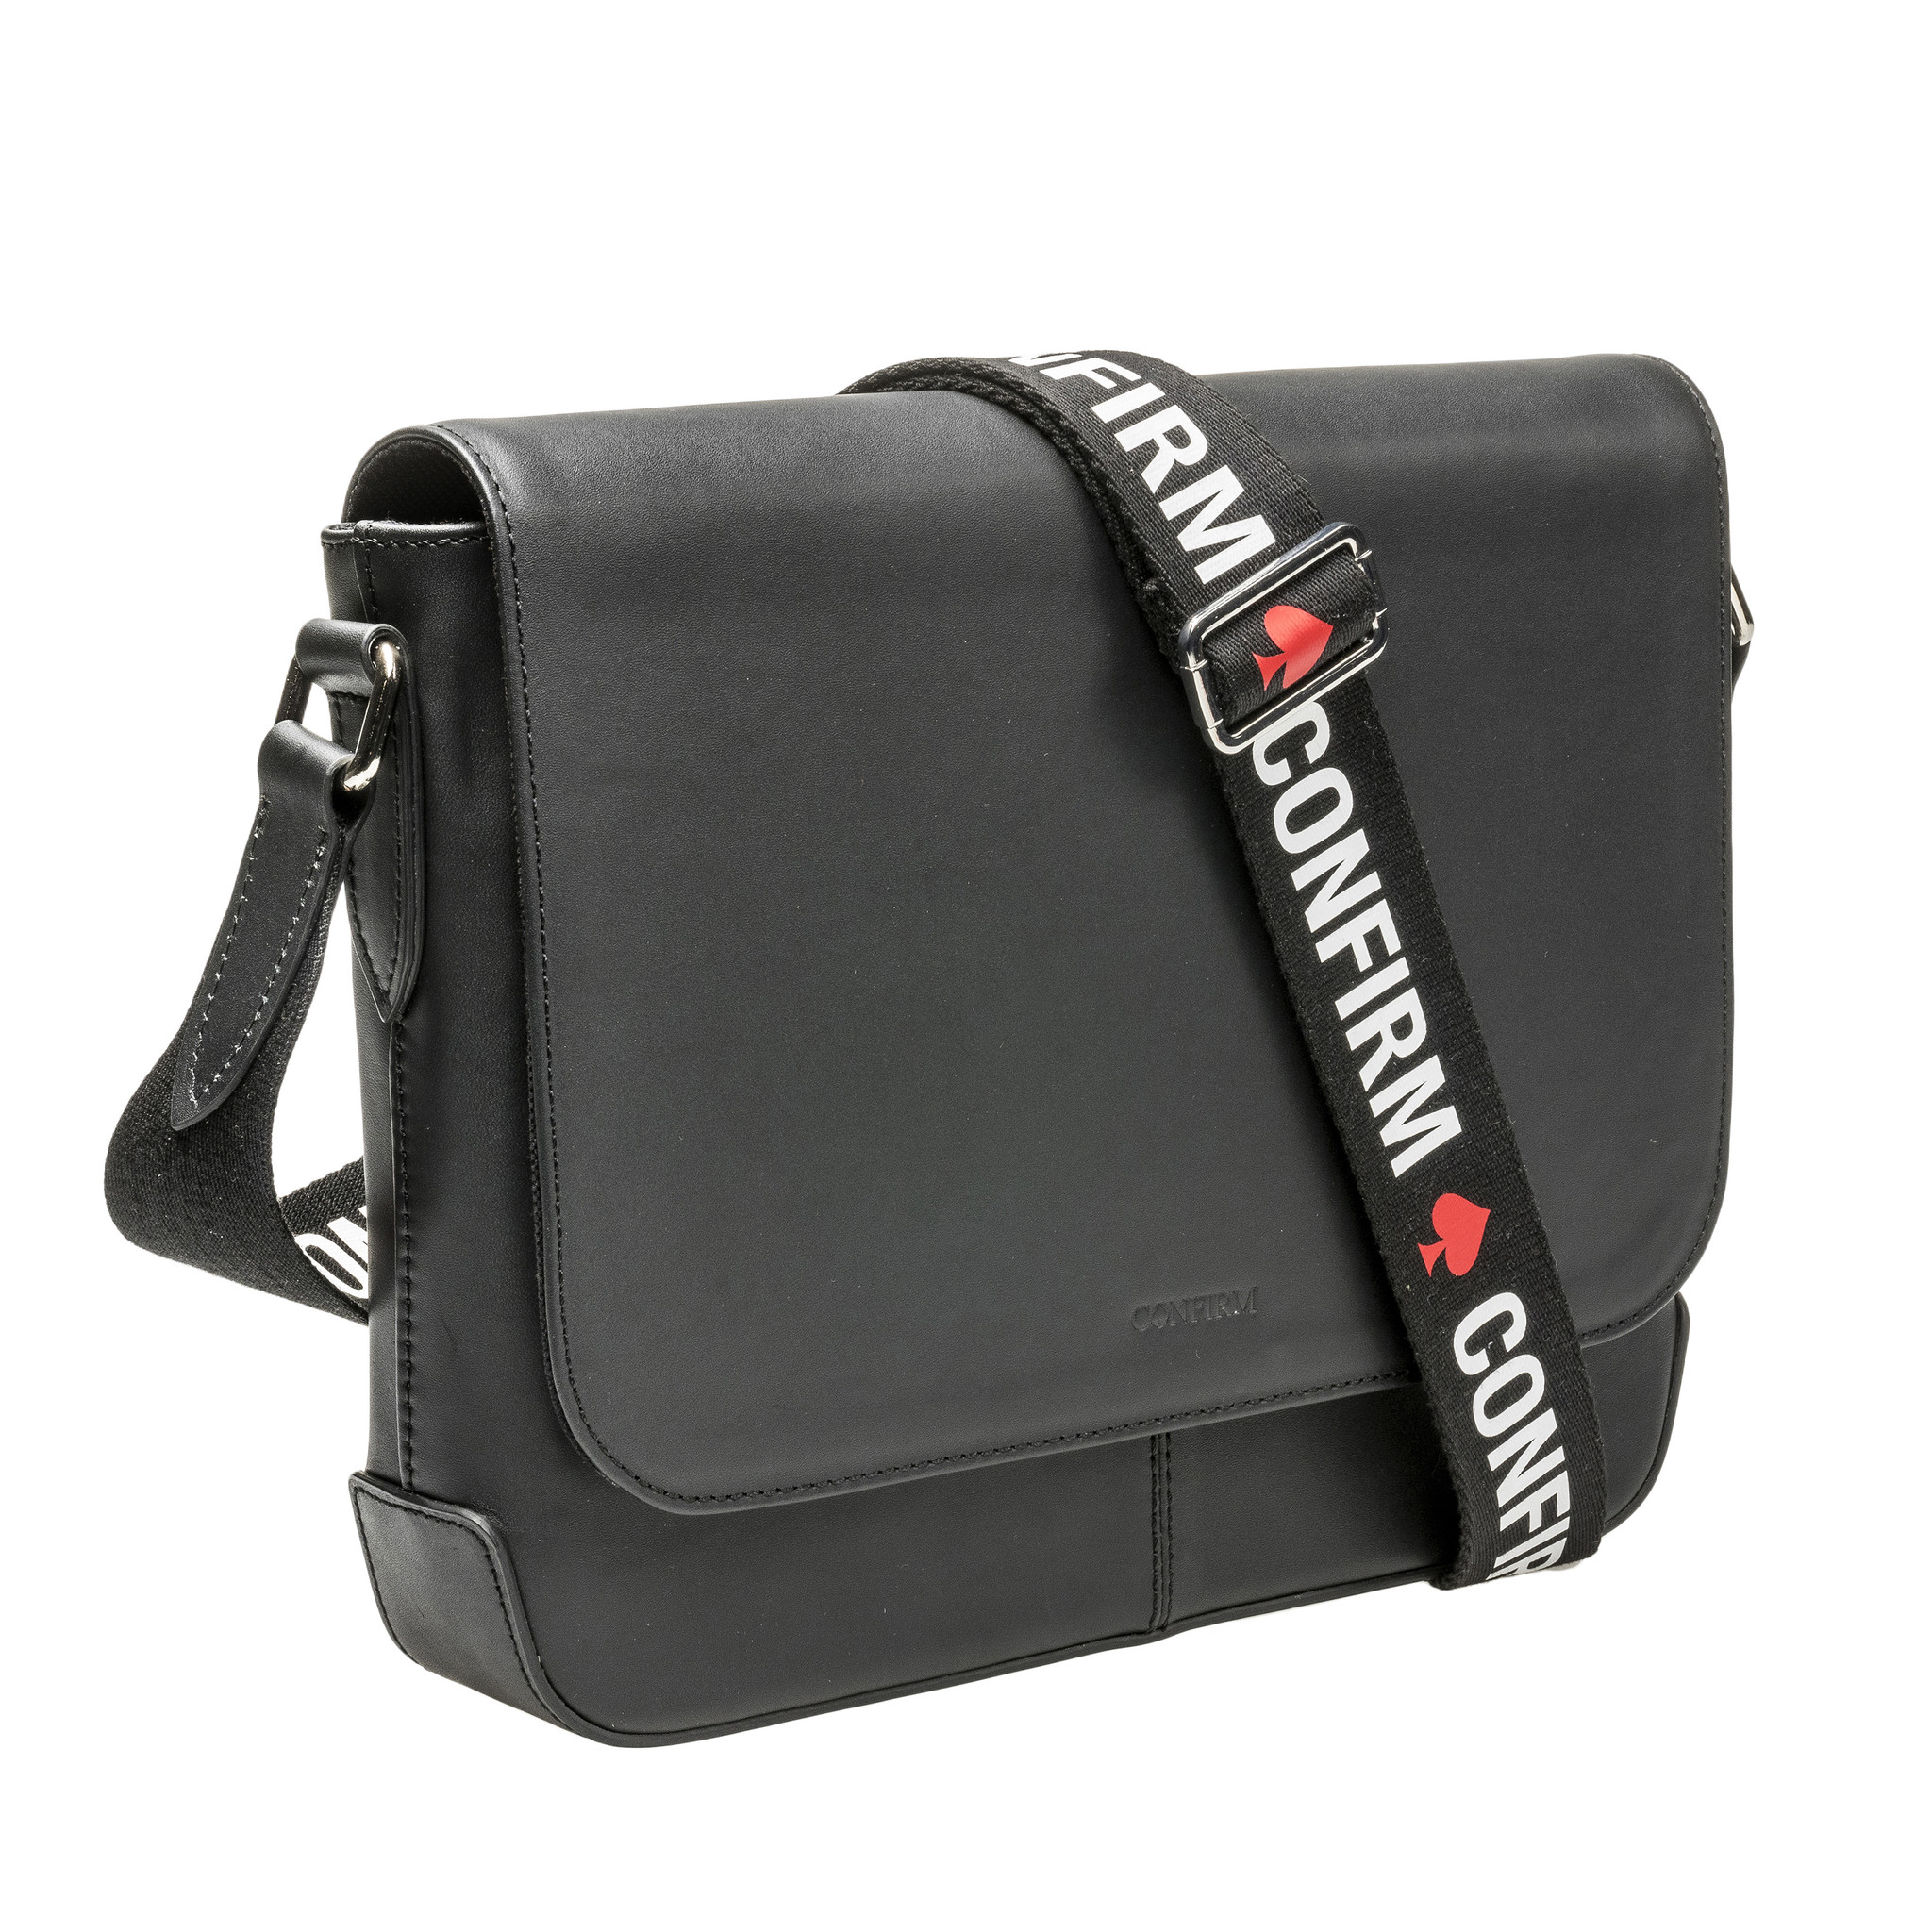 Confirm messenger tas Verus - smooth-1